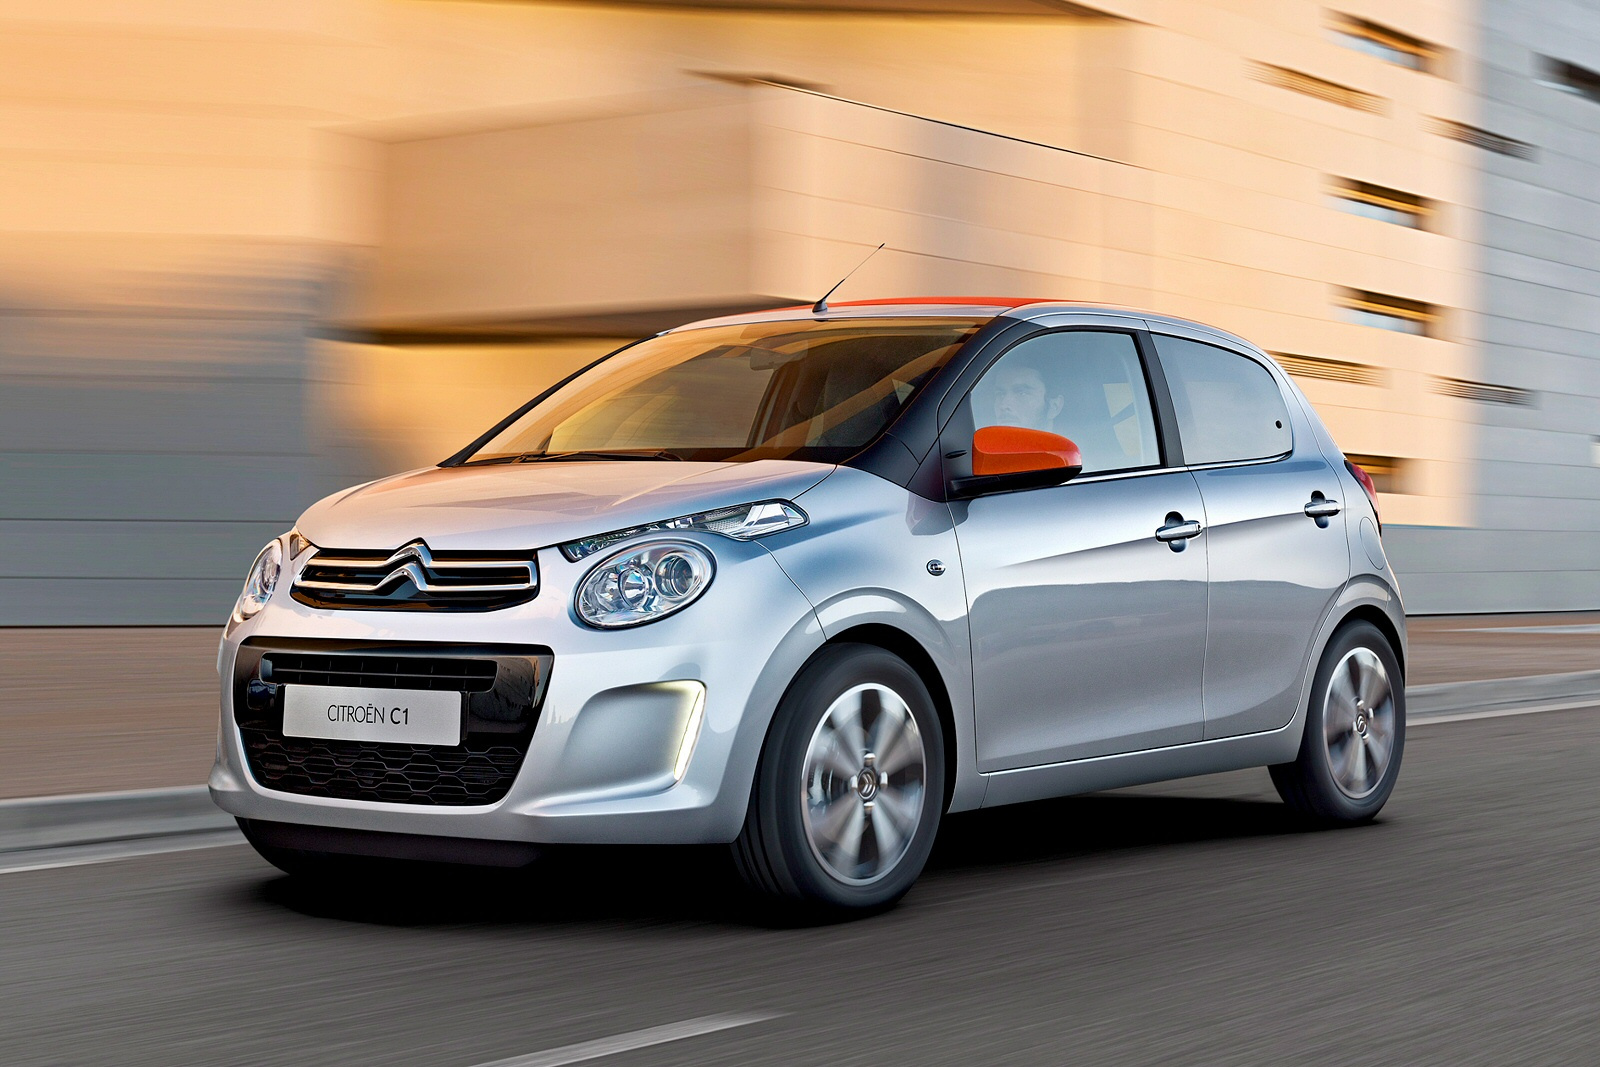 citroen c1 buy a new c1 new cars for sale 2018. Black Bedroom Furniture Sets. Home Design Ideas